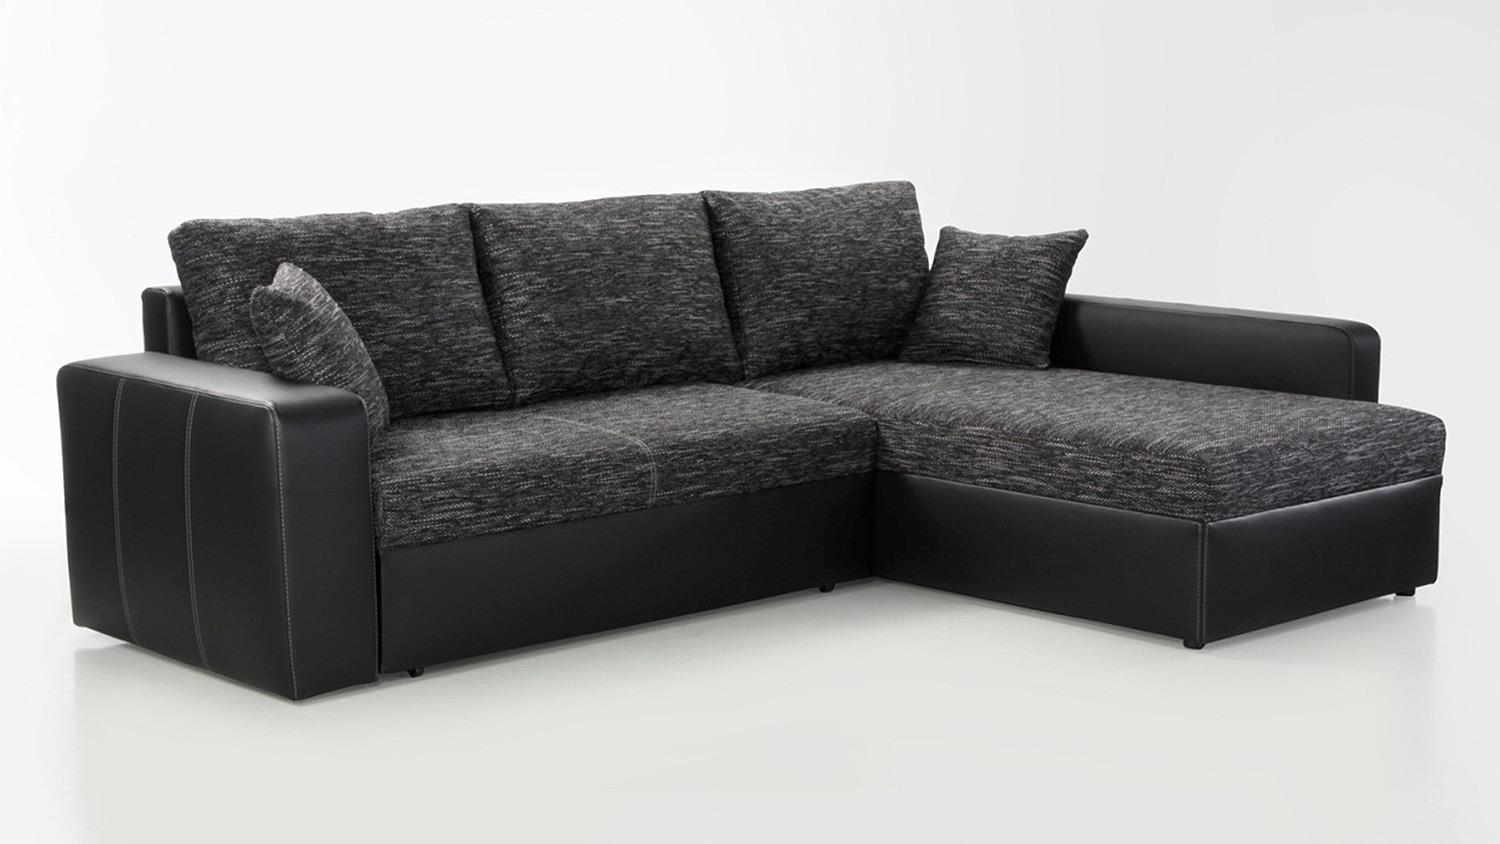 ecksofa viper sofa in schwarz anthrazit mit bettfunktion. Black Bedroom Furniture Sets. Home Design Ideas